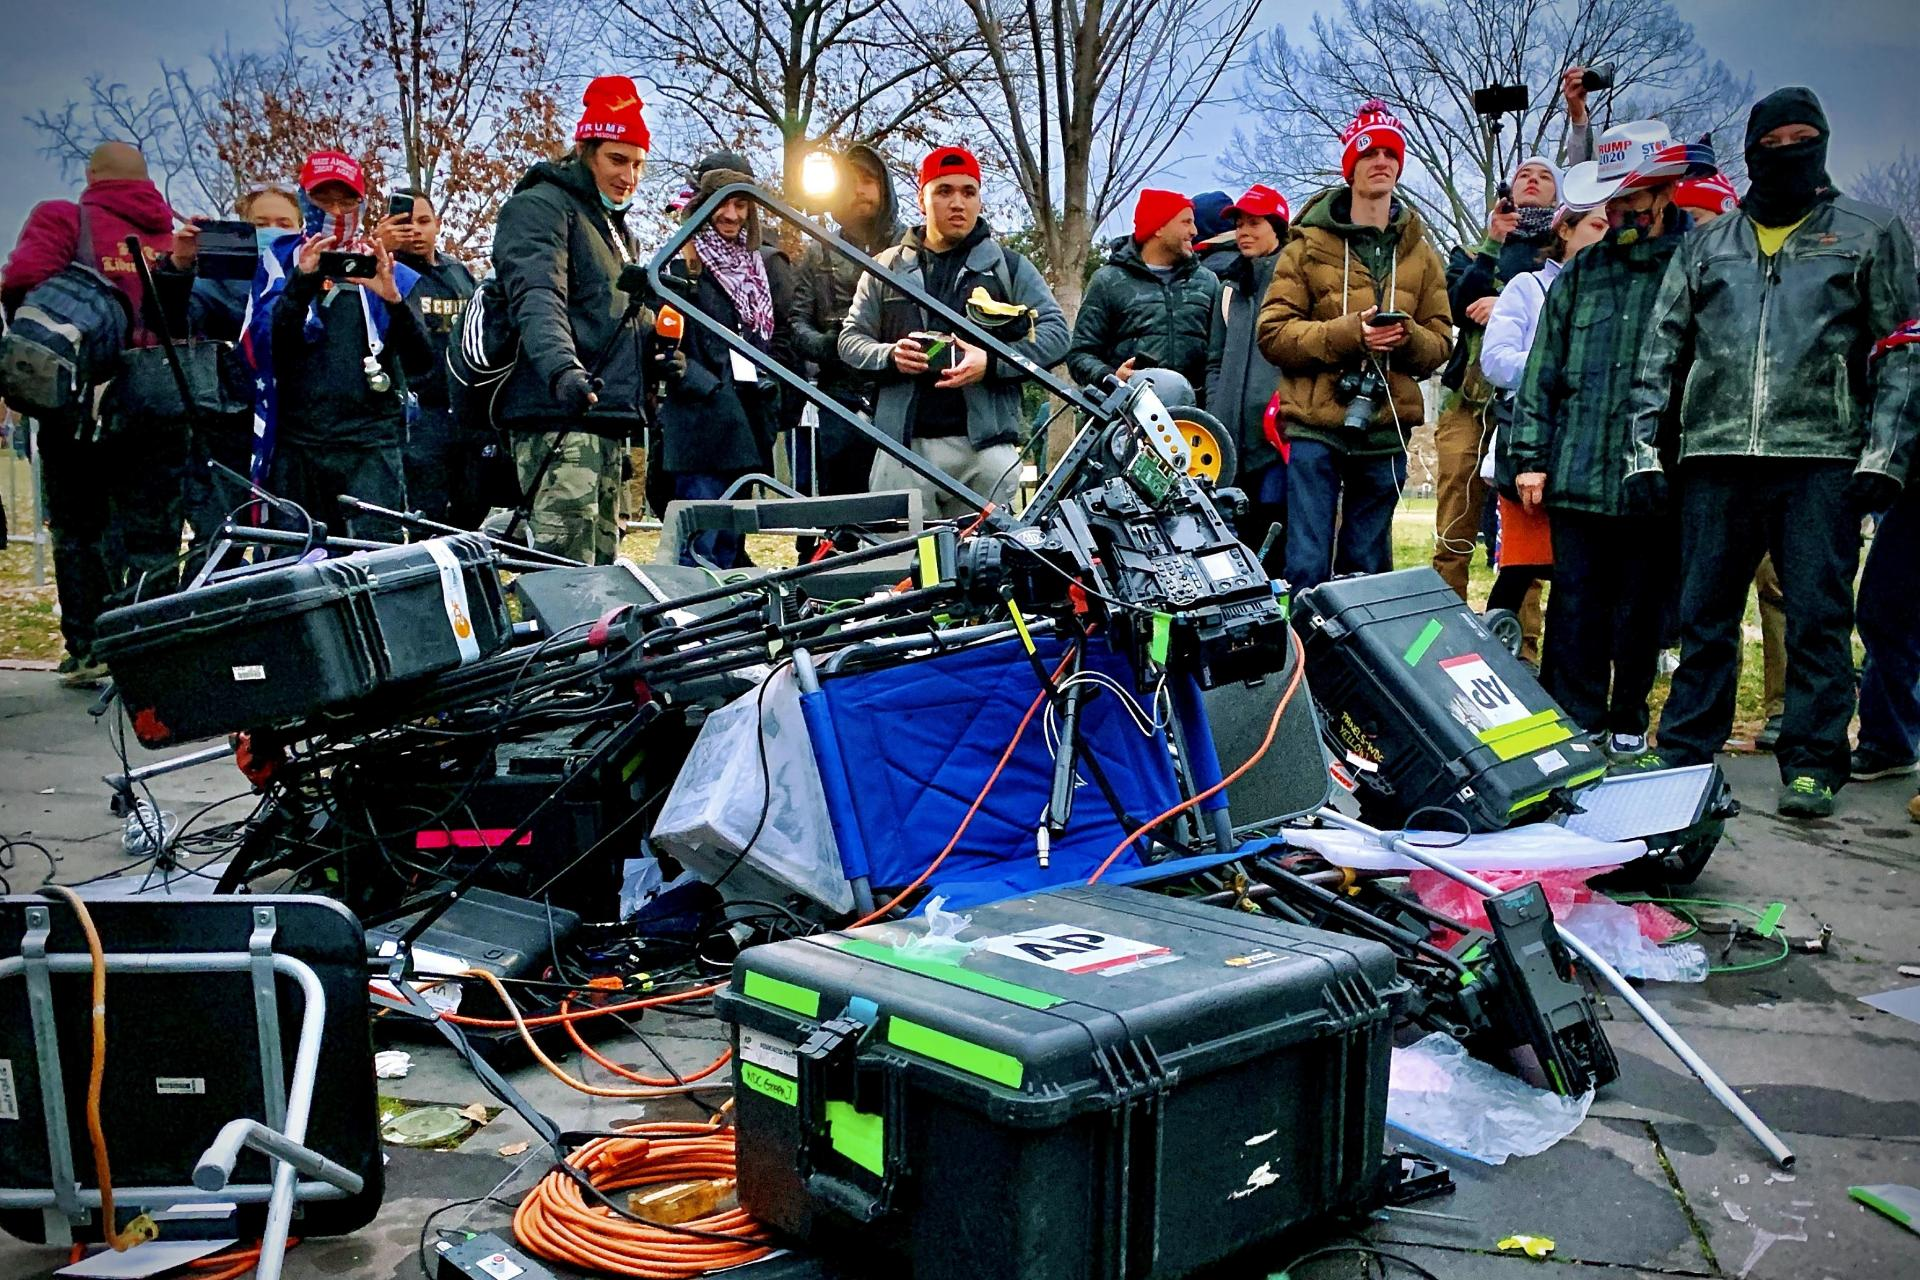 Trump protesters look at media equipment they destroyed during Wednesday's riot.